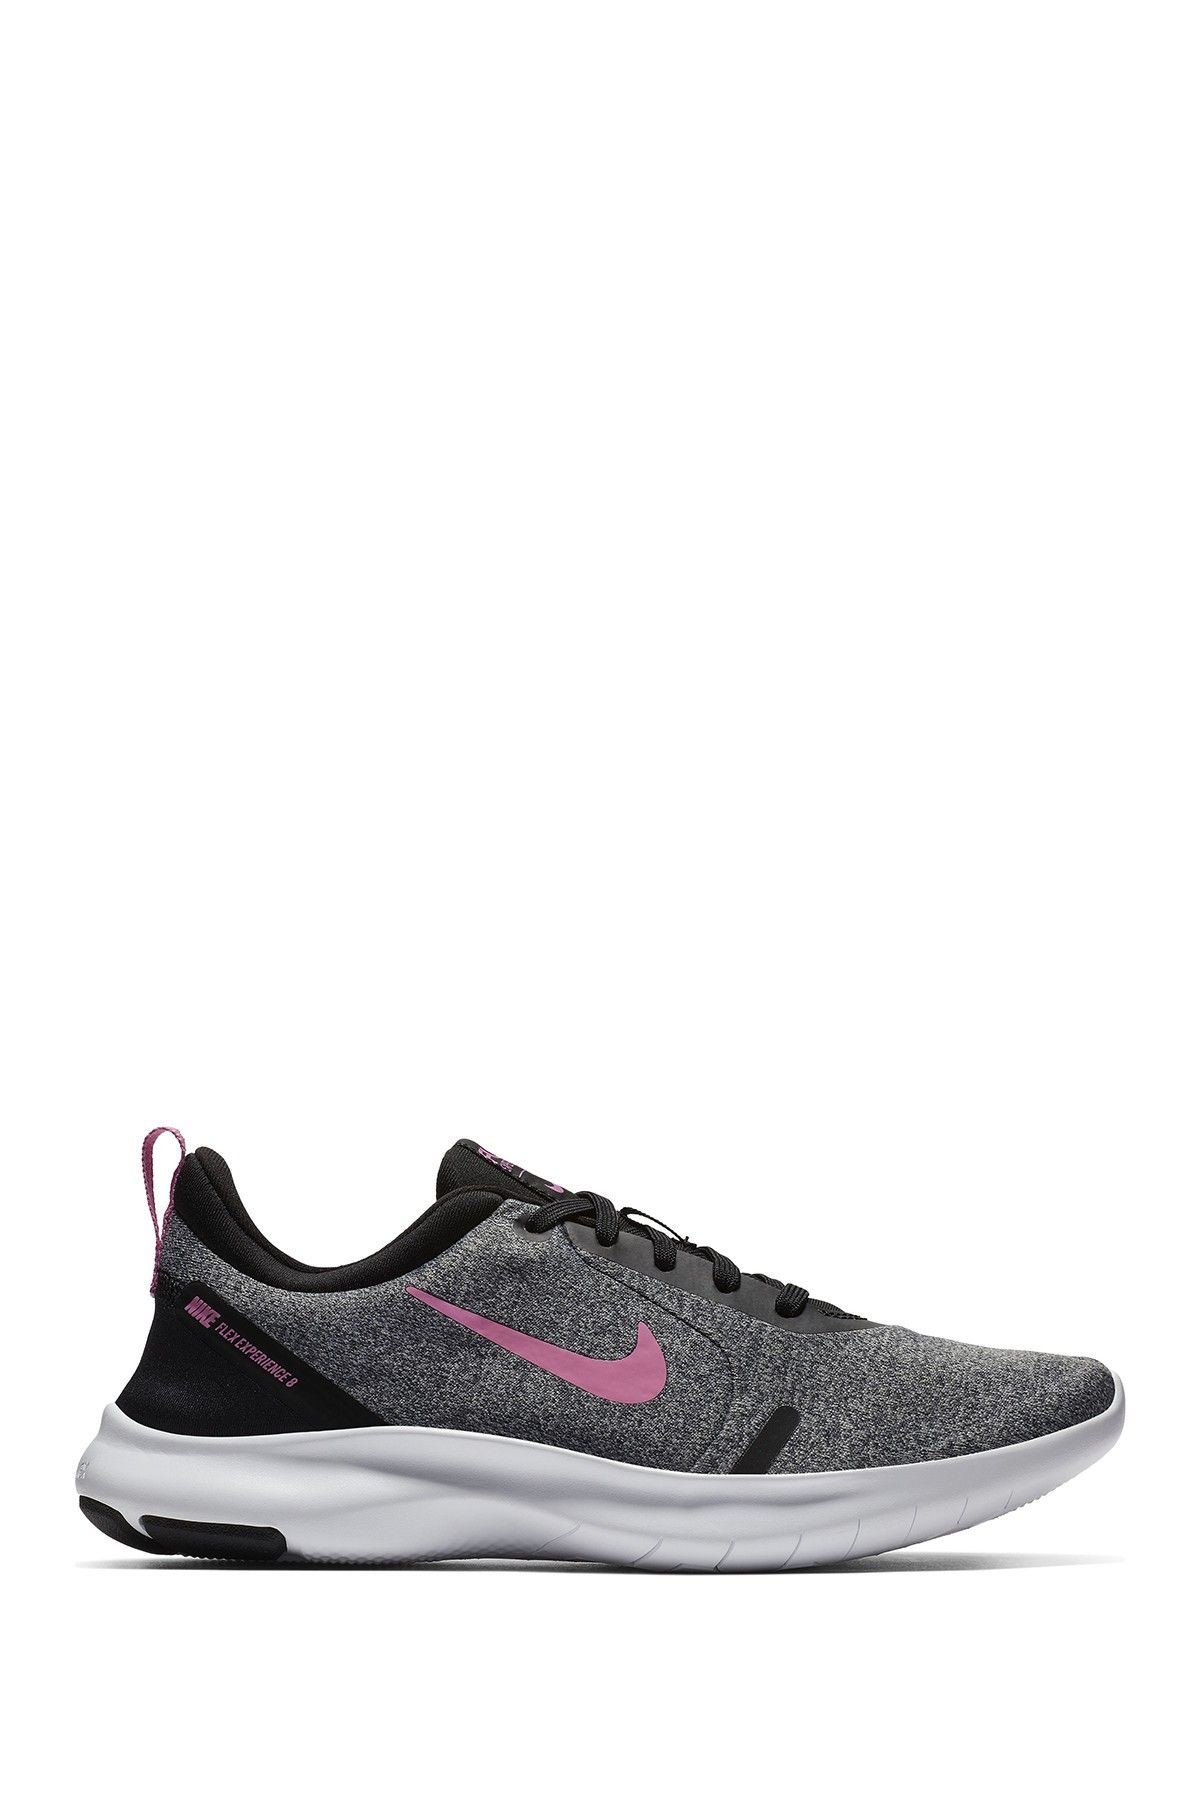 online store ad5c5 958d4 Flex Experience RN 8 Sneaker by Nike on  nordstrom rack